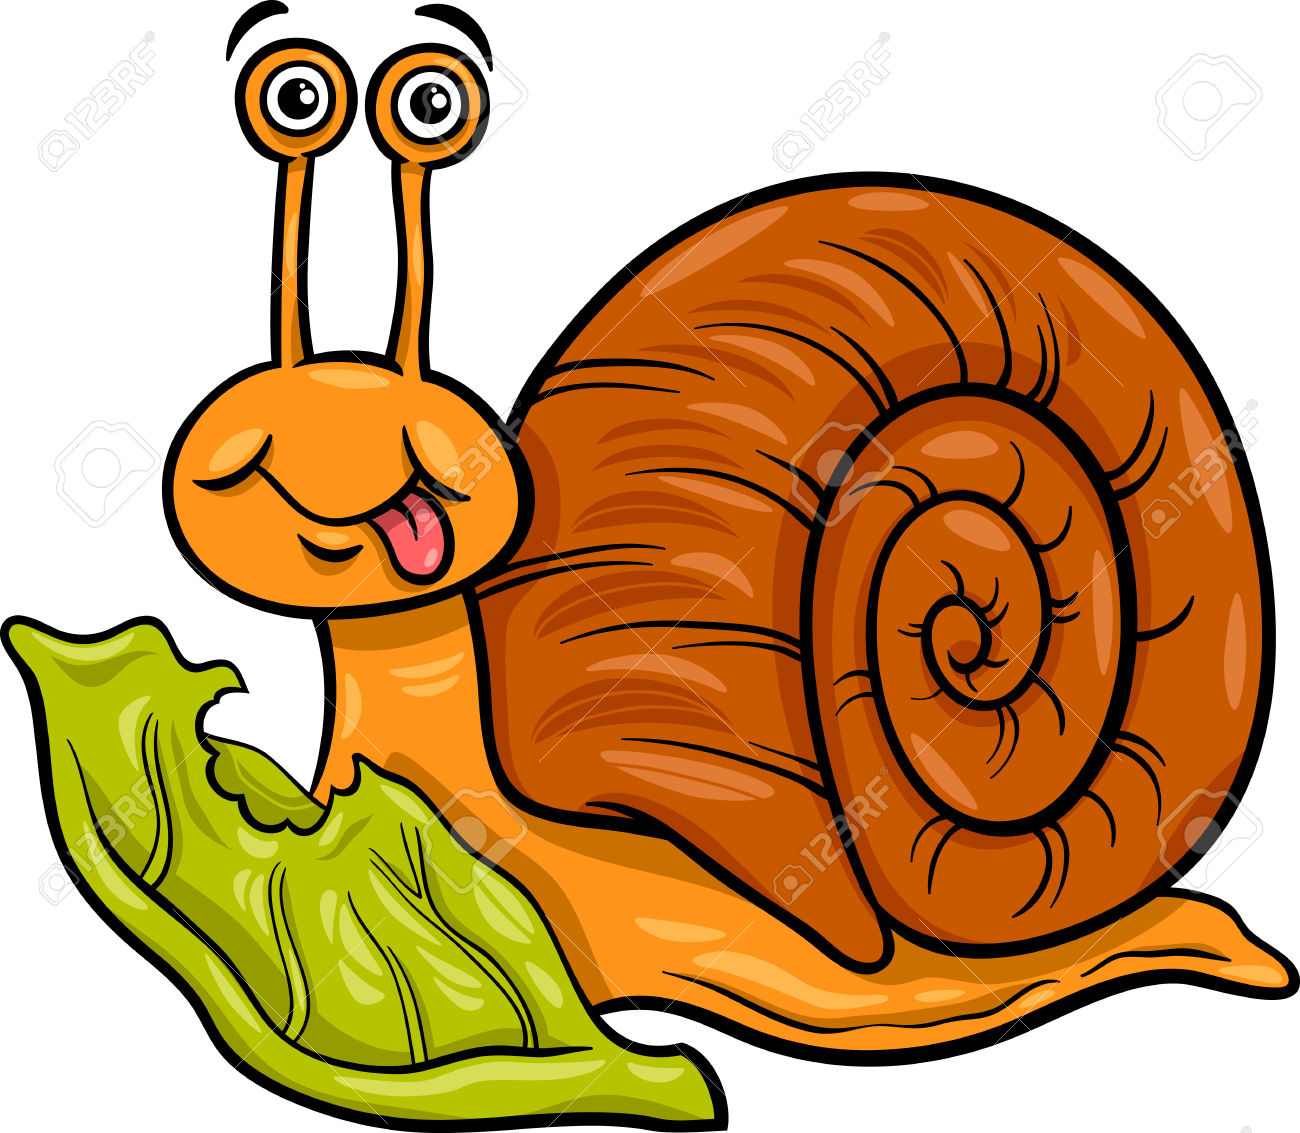 Cartoon Illustration Of Funny Snail Mollusk With Lettuce Leaf.